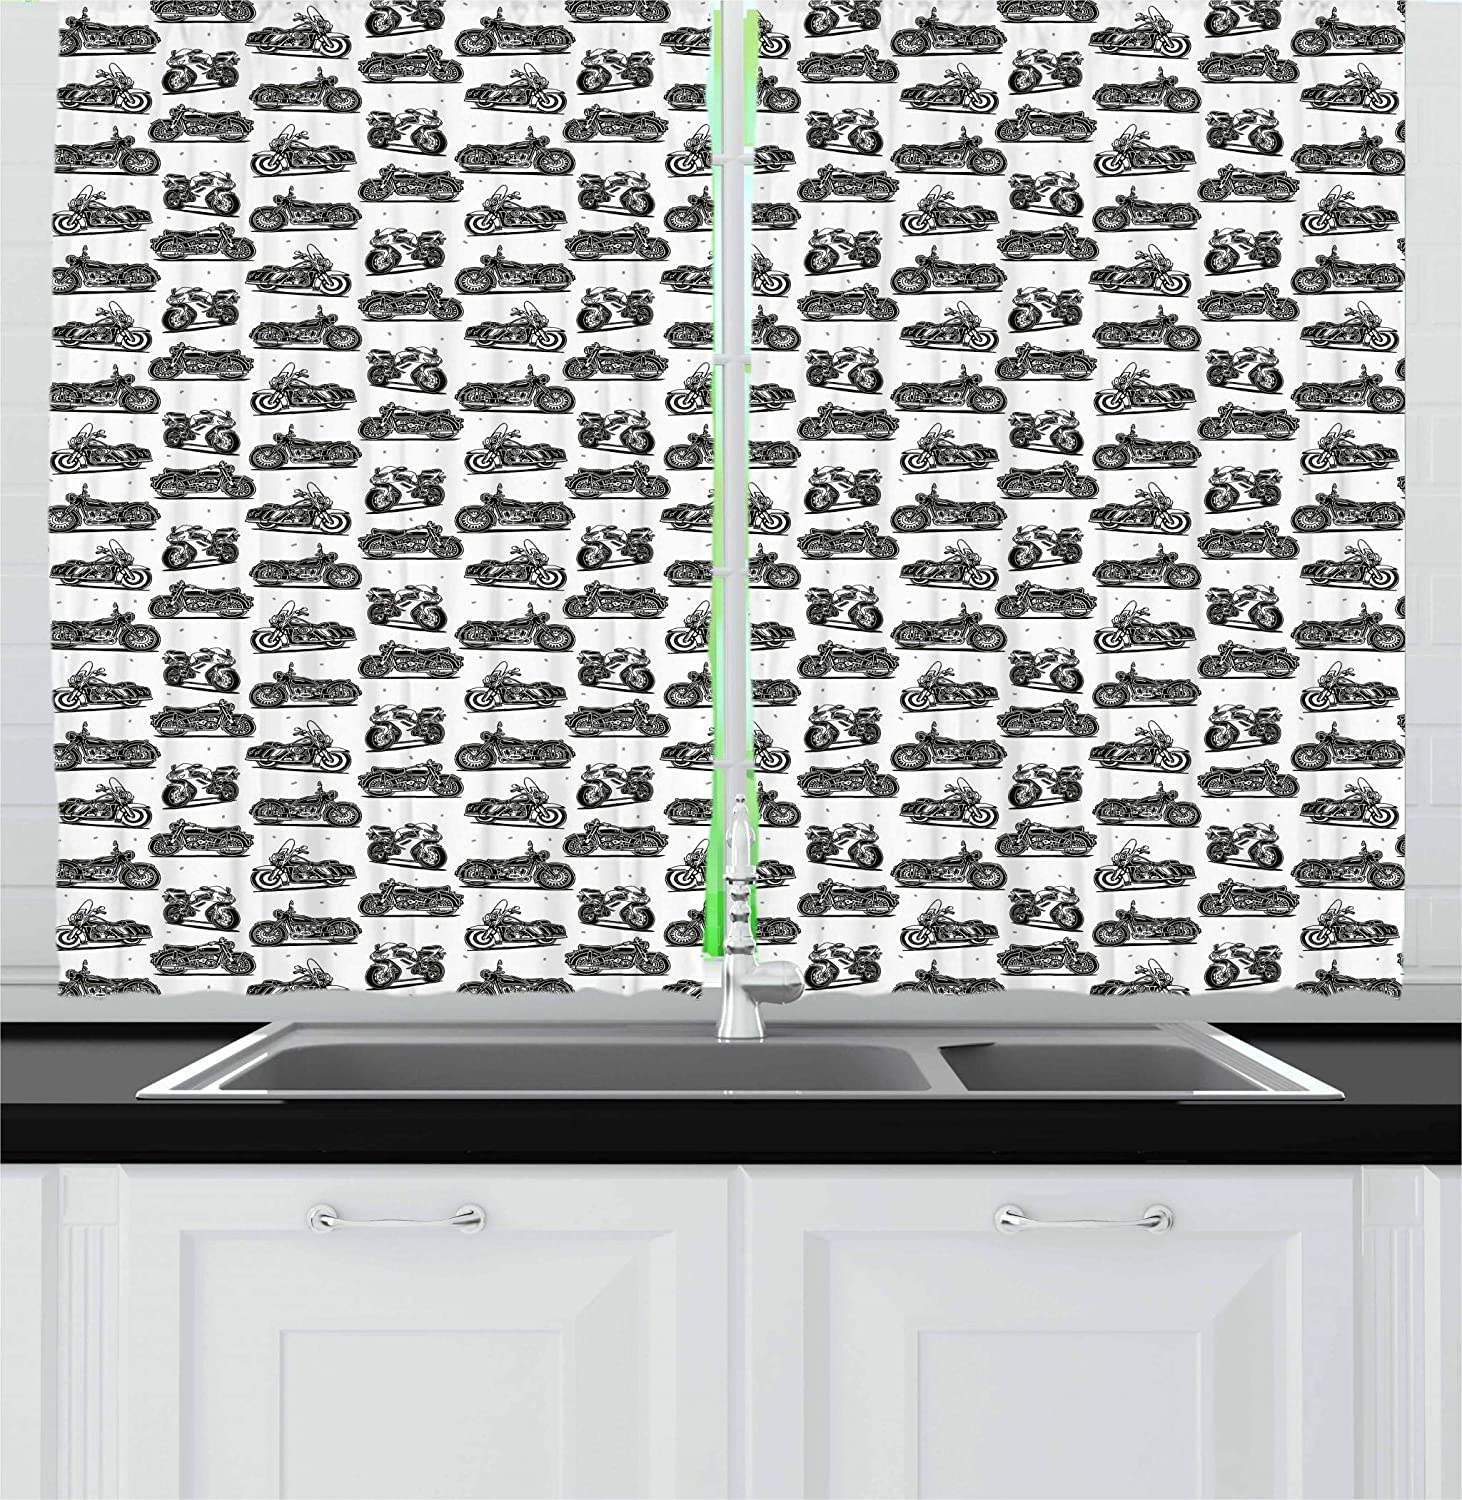 55 W X 39 L Inches Window Drapes 2 Panel Set for Kitchen Cafe Motorcycle Drawings of Old-Fashioned and Modern on White Background Ambesonne Motorcycle Kitchen Curtains Charcoal Grey White